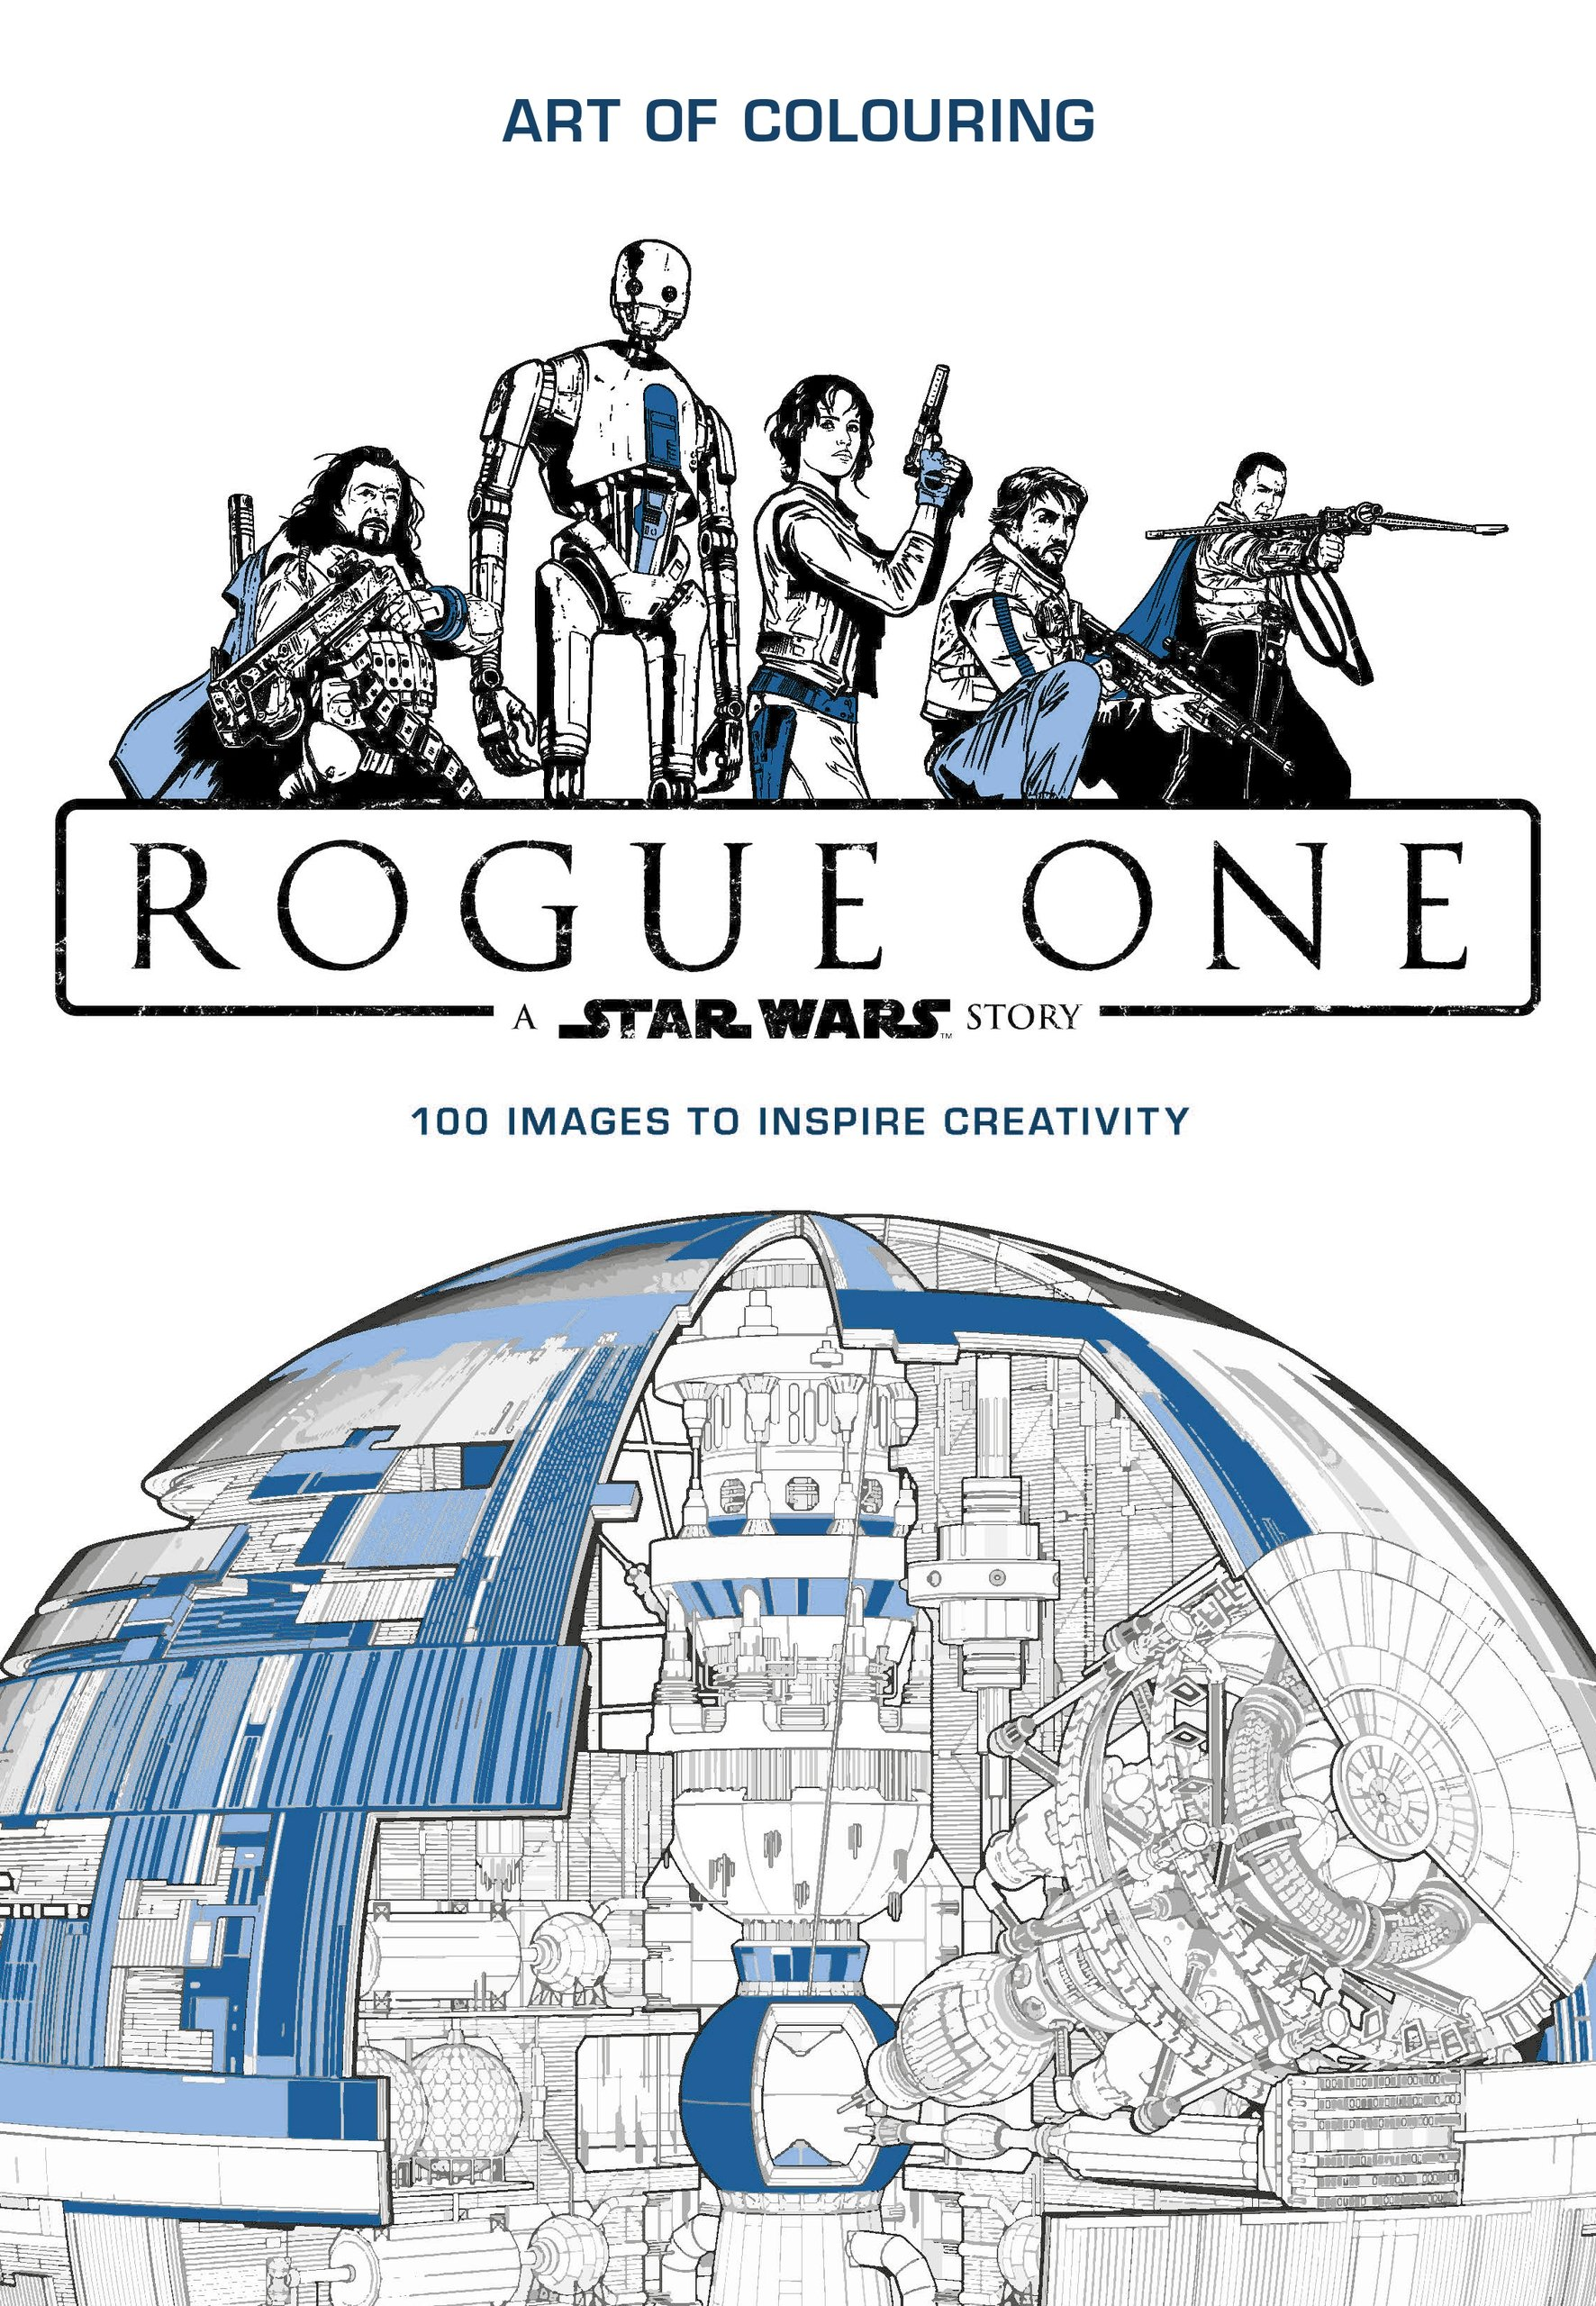 - Star Wars Rogue One: Art Of Colouring: Amazon.co.uk: Lucasfilm